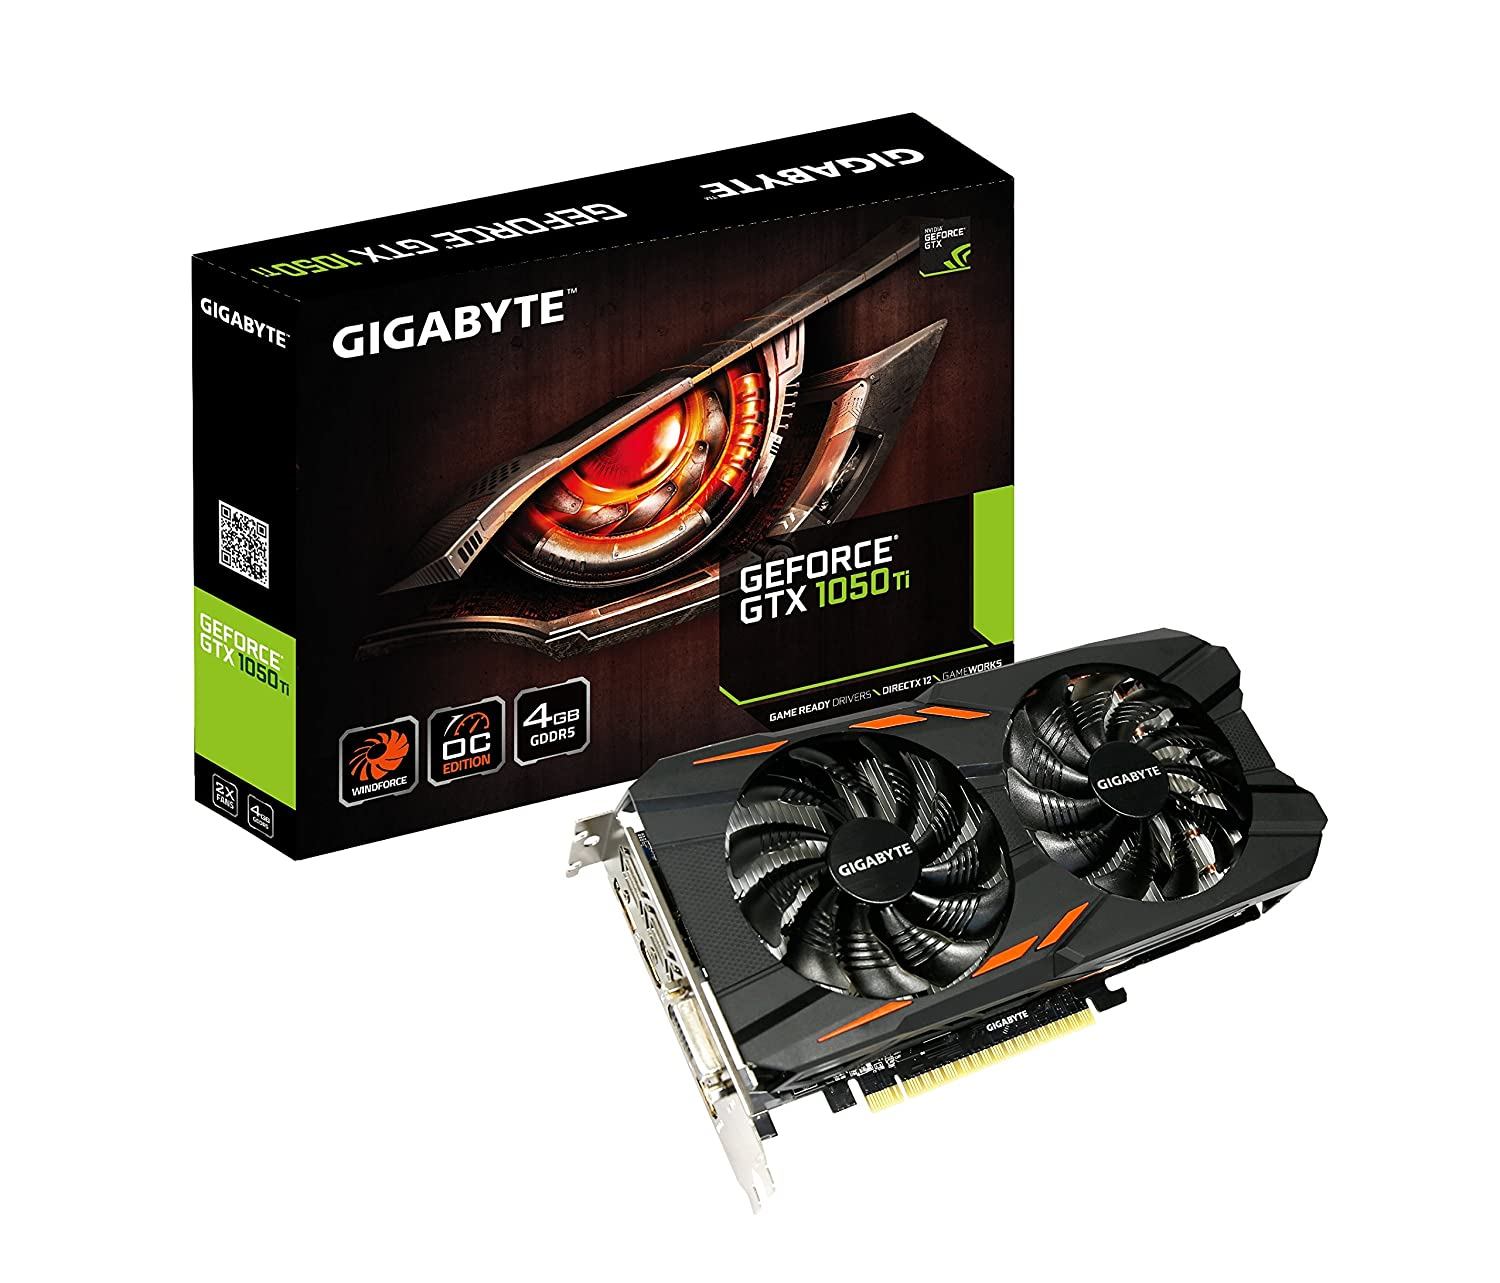 Gigabyte GTX 1050 Ti Windforce OC